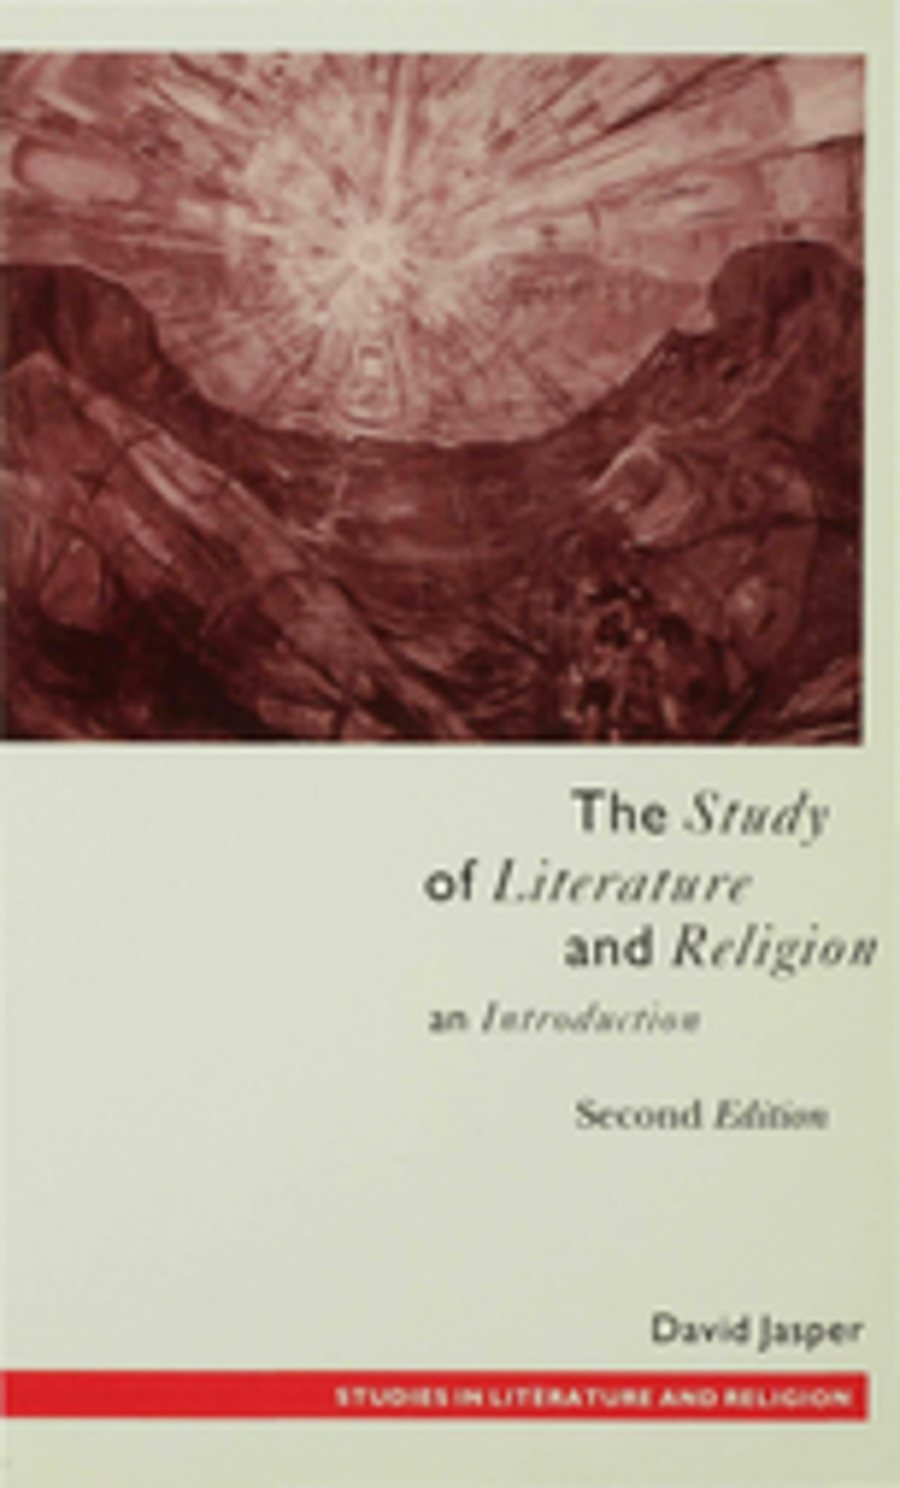 a literary and religious analysis of the book of deuteronomy Category: a group of biblical books that have a similar literary genre or main themes and have been placed together as a major section of the bible torah torah: the first five books of the old testament that recount the foundation story of the israelites, their covenant with god, and their role in human history.